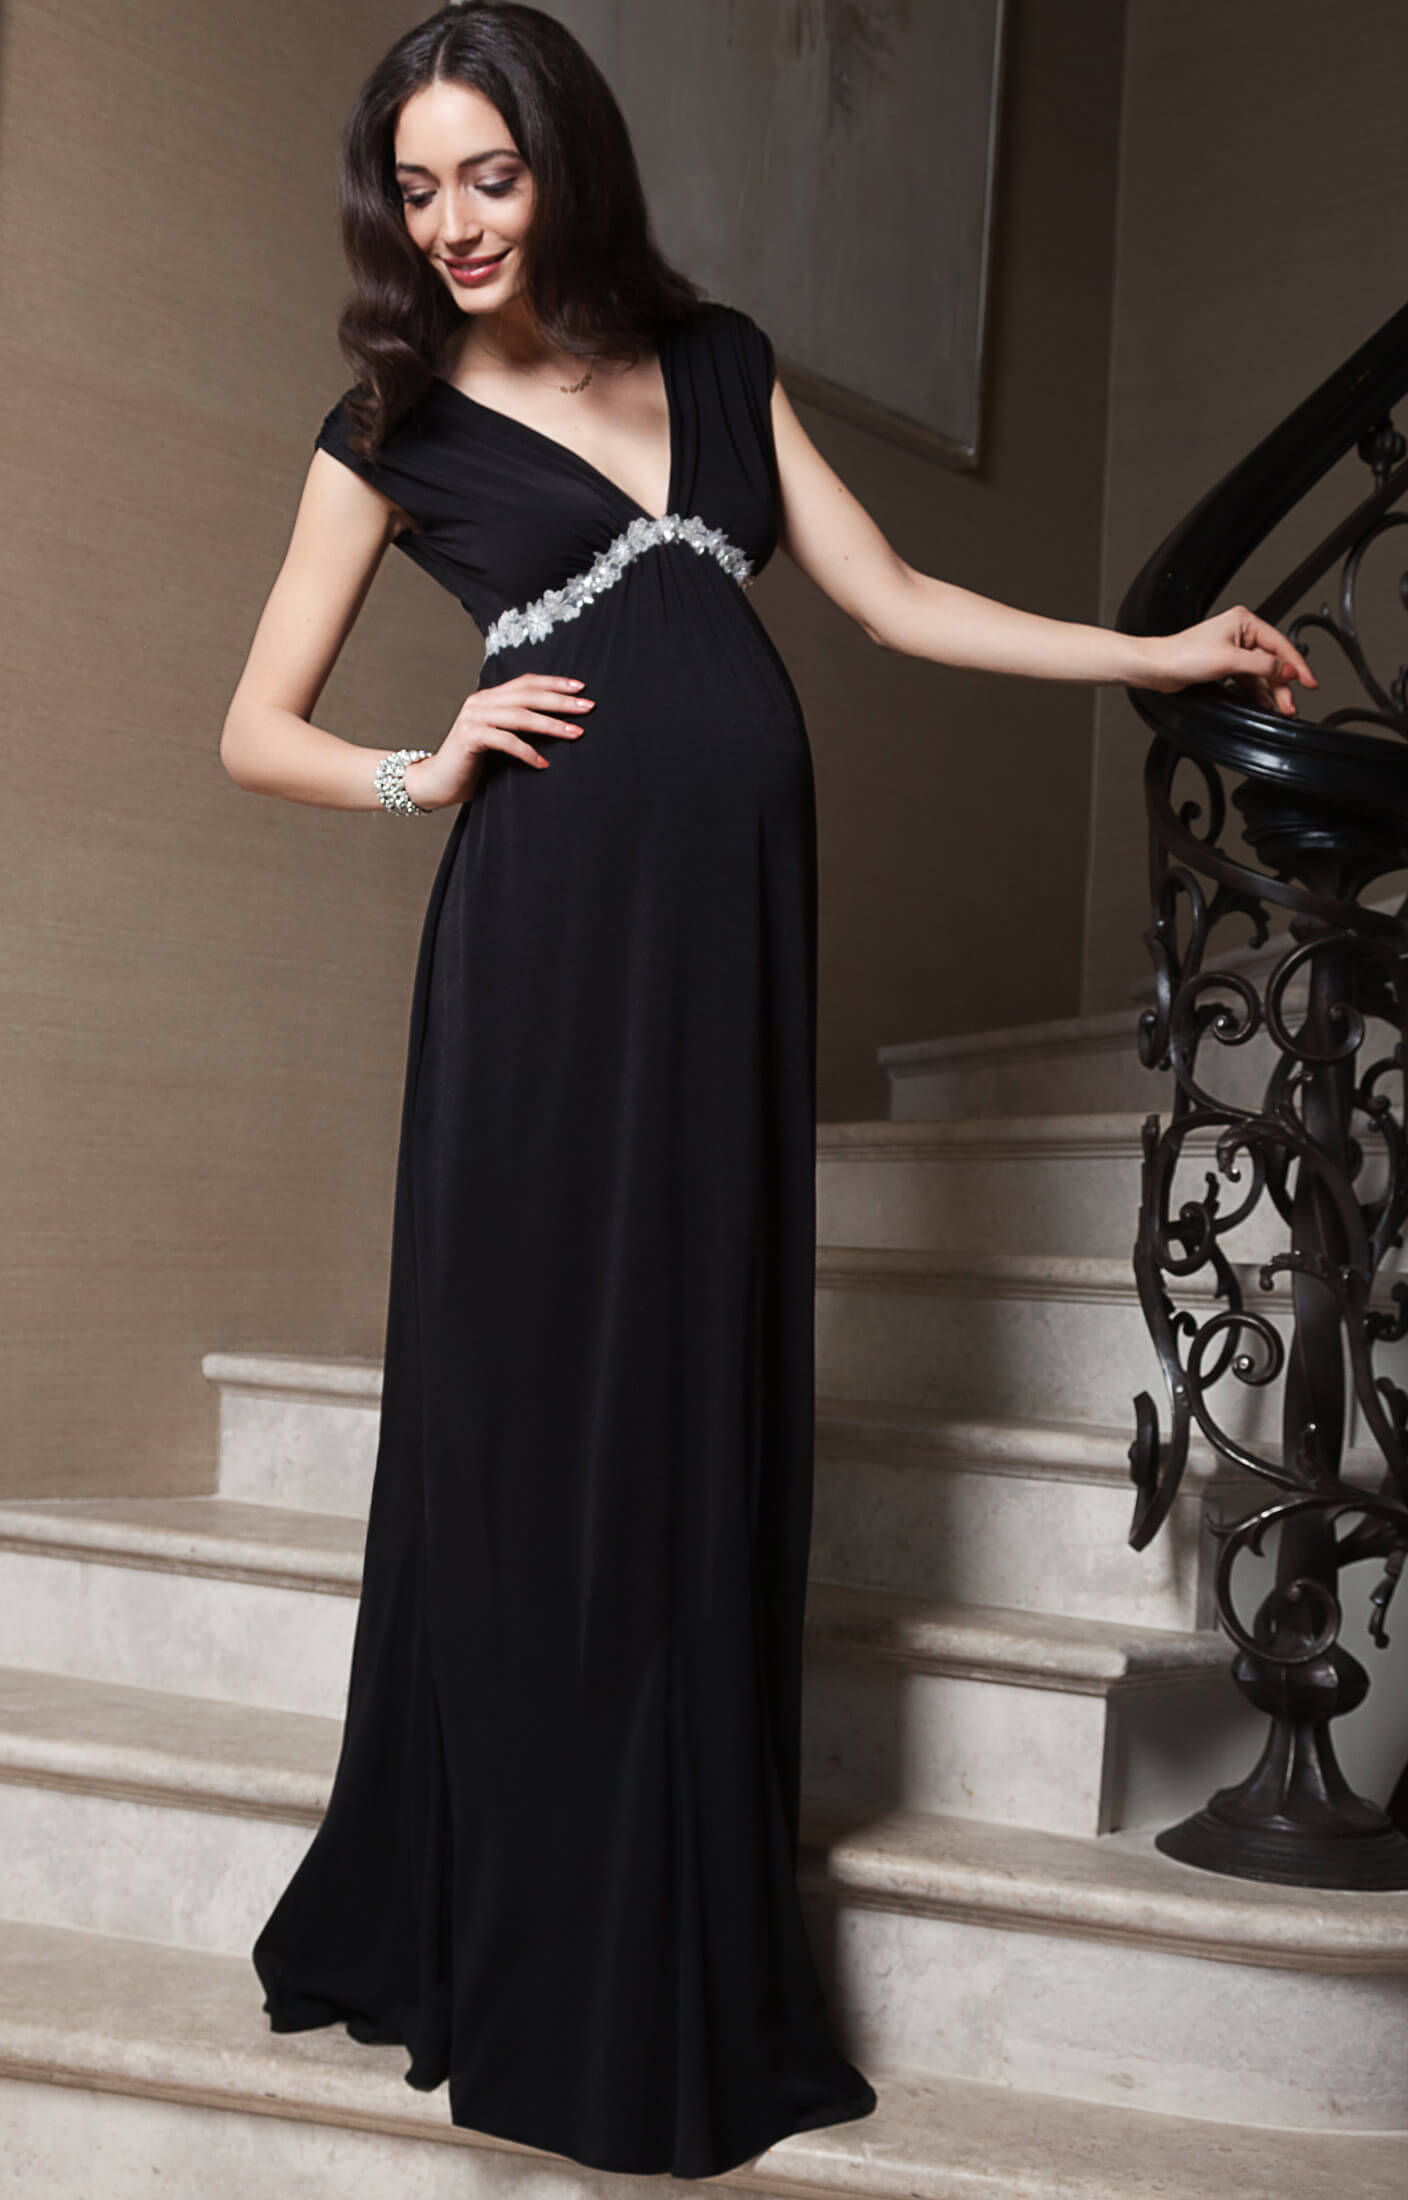 Maternity Evening dresses. Seraphine's elegant maternity evening dresses are perfect for formal occasions. Make a sweeping entrance worthy of the red carpet in one of our floor length gowns, designed to make a big impact.